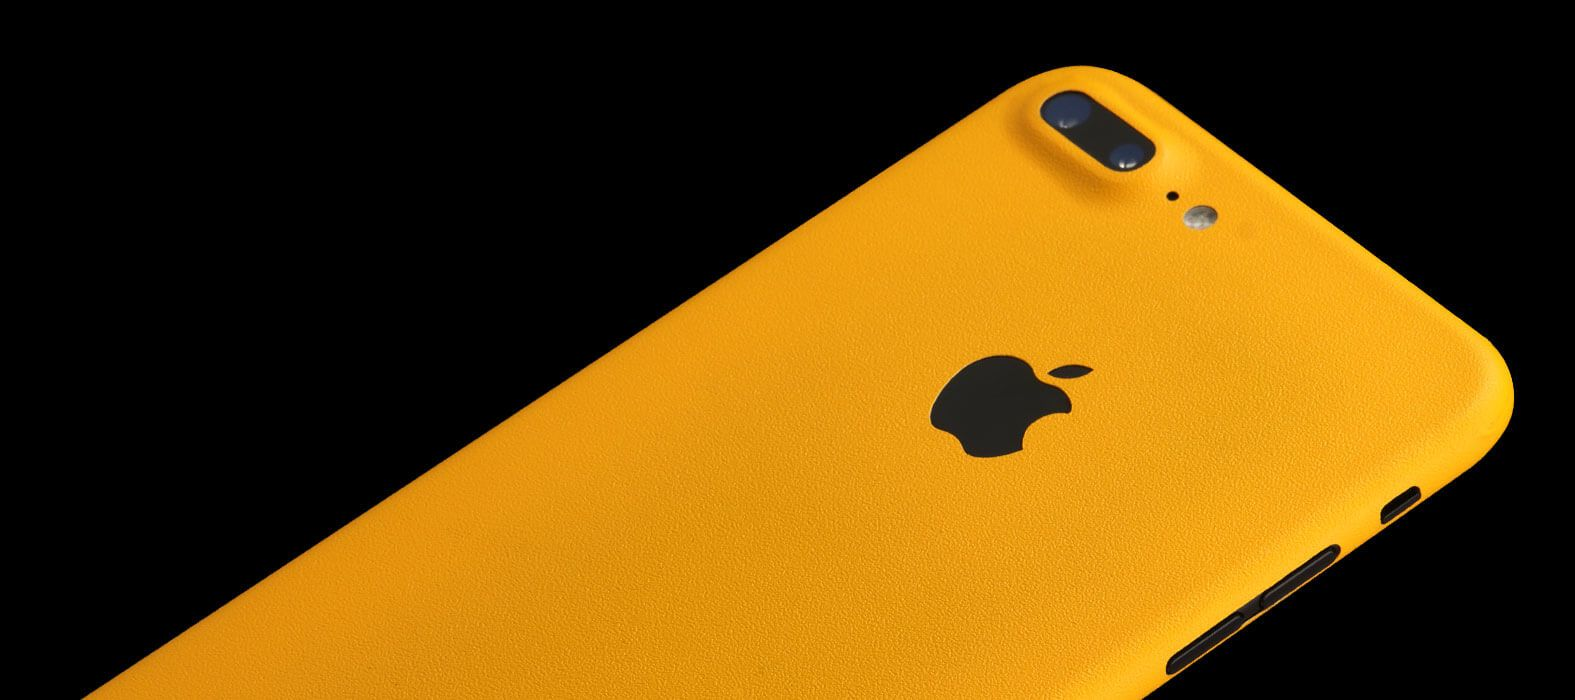 iPhone 7 Plus Sandstone Yellow Skins & Wraps